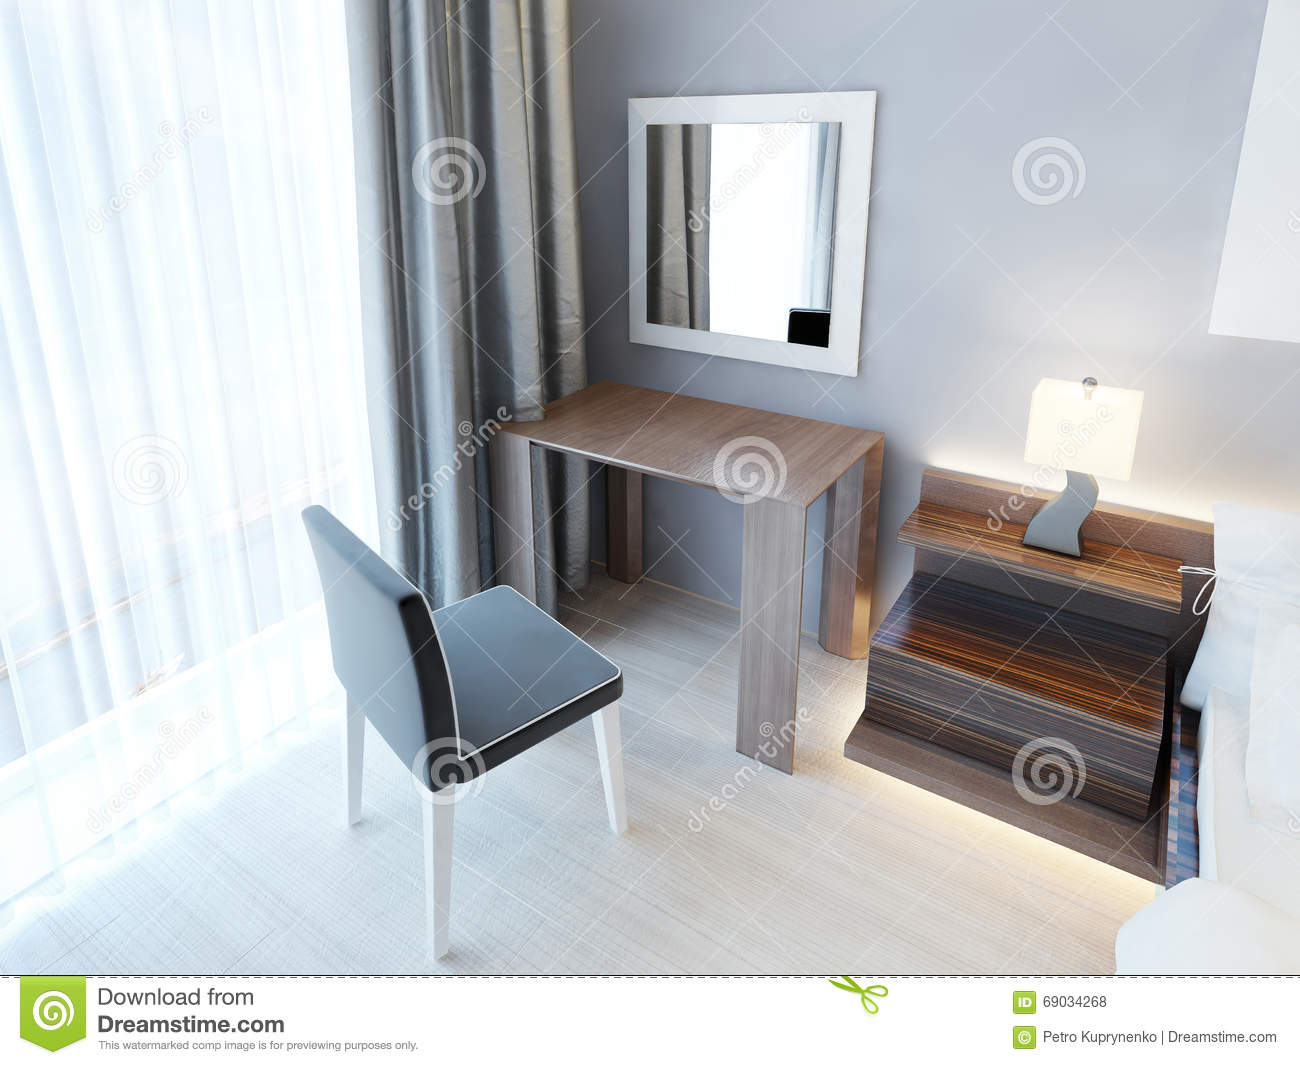 coiffeuse moderne avec miroir maison design. Black Bedroom Furniture Sets. Home Design Ideas